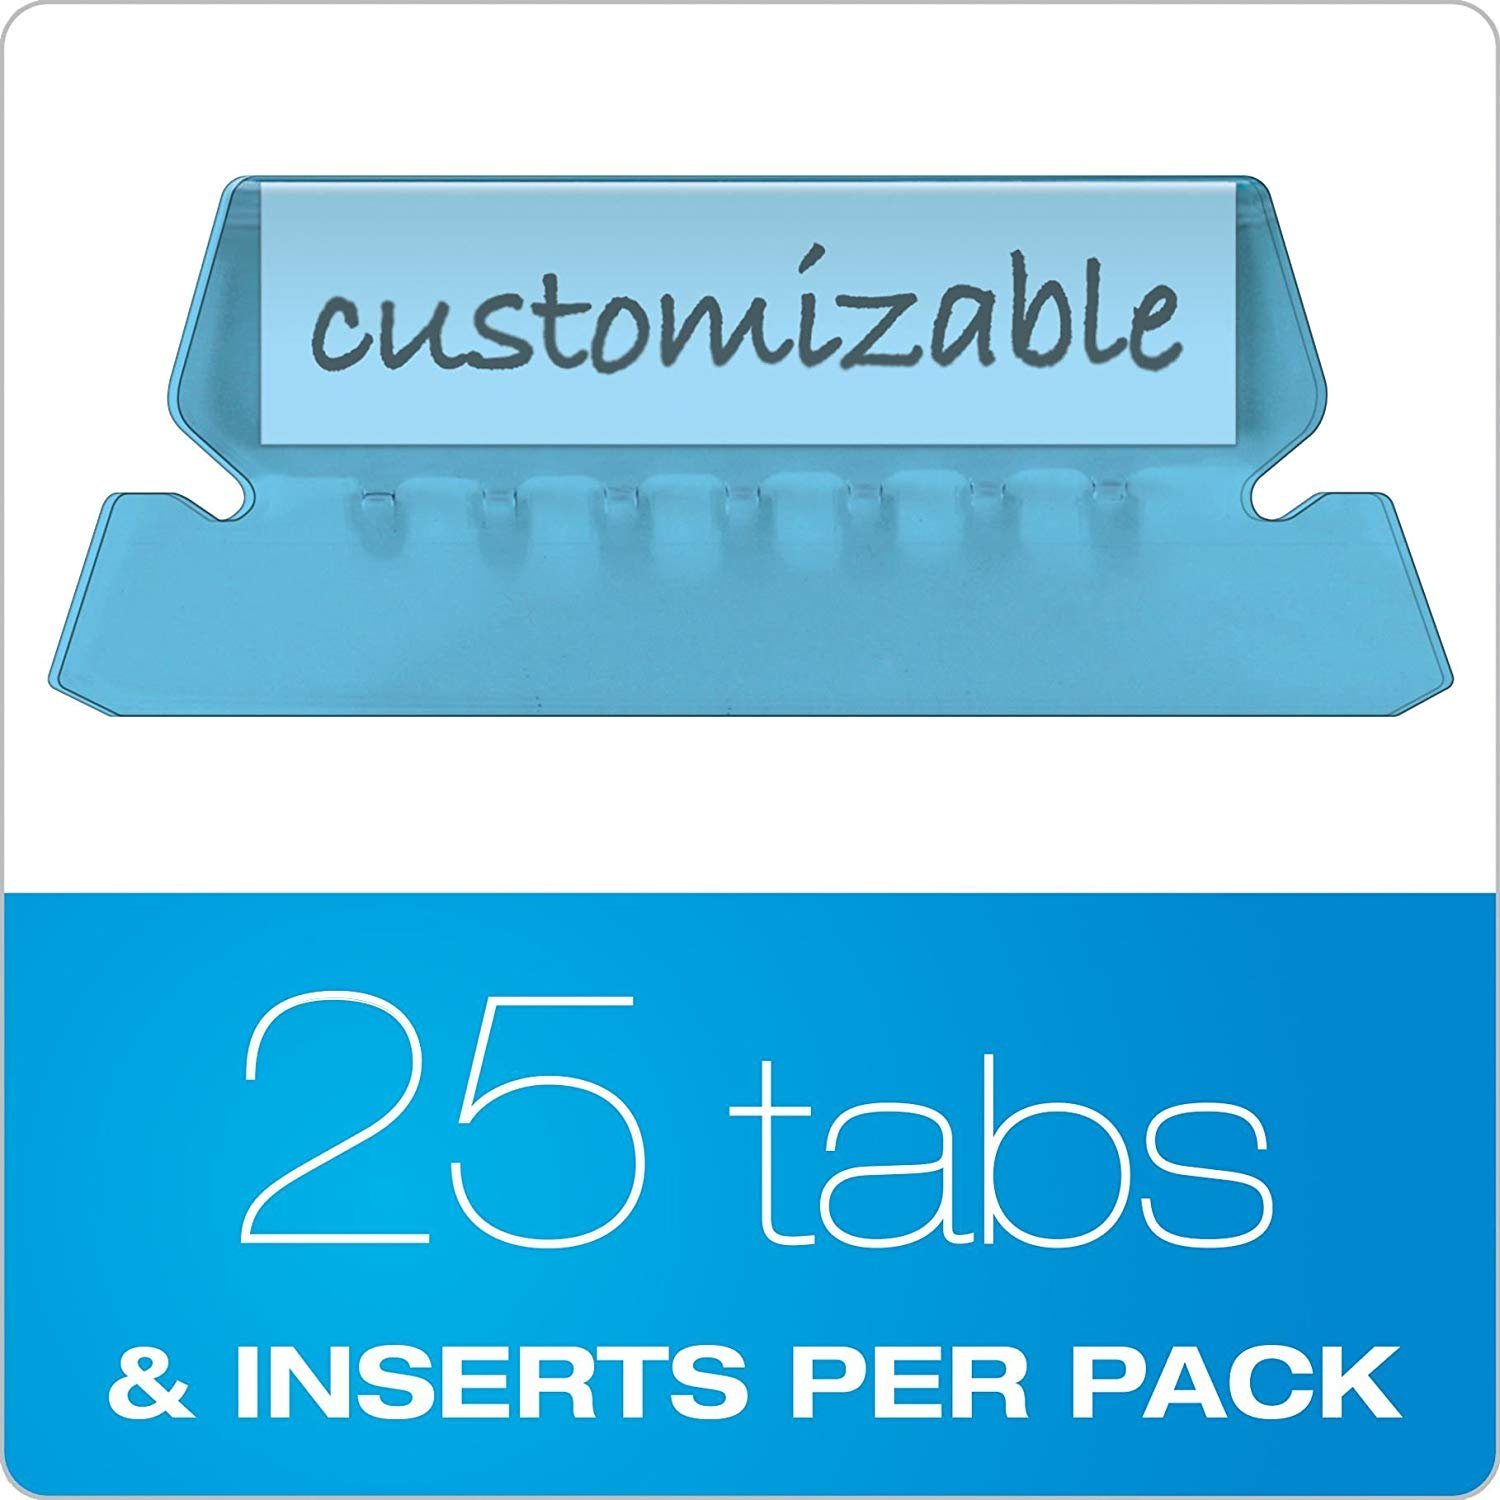 Pendaflex Insertable Plastic Tabs Hanging Folder Tabs, 2'', Bundle of 8 Colors, 25 Tabs and Inserts Per Color, 200 Tabs and Inserts Total by Pendaflex